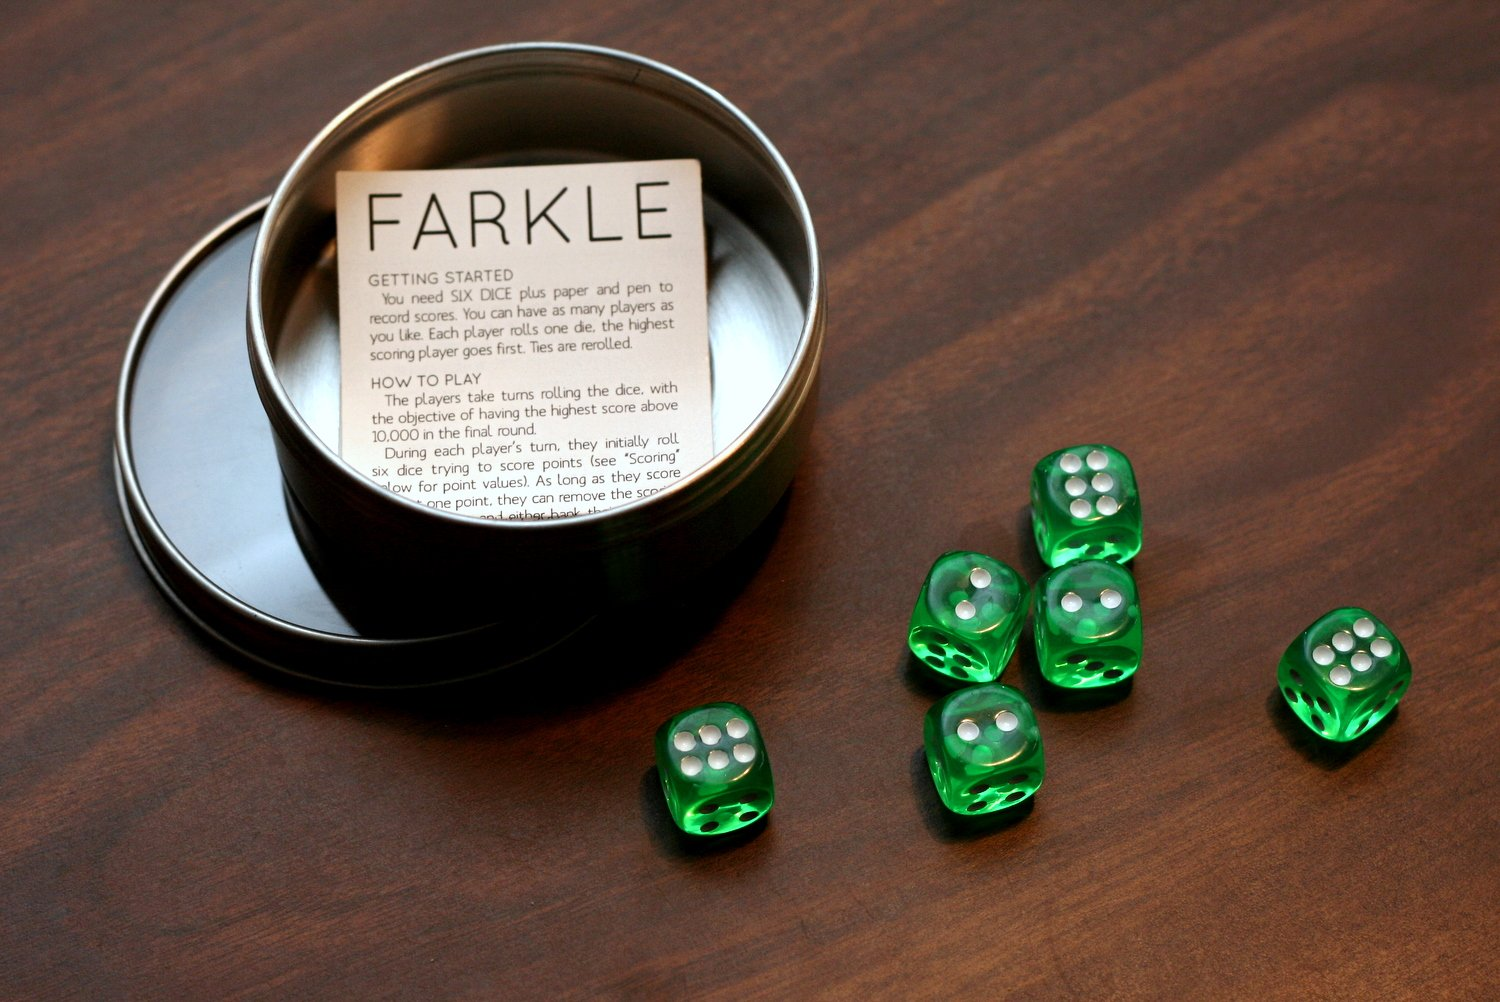 photograph about Farkle Instructions Printable named Farkle Sport Fastened - Paging Supermom